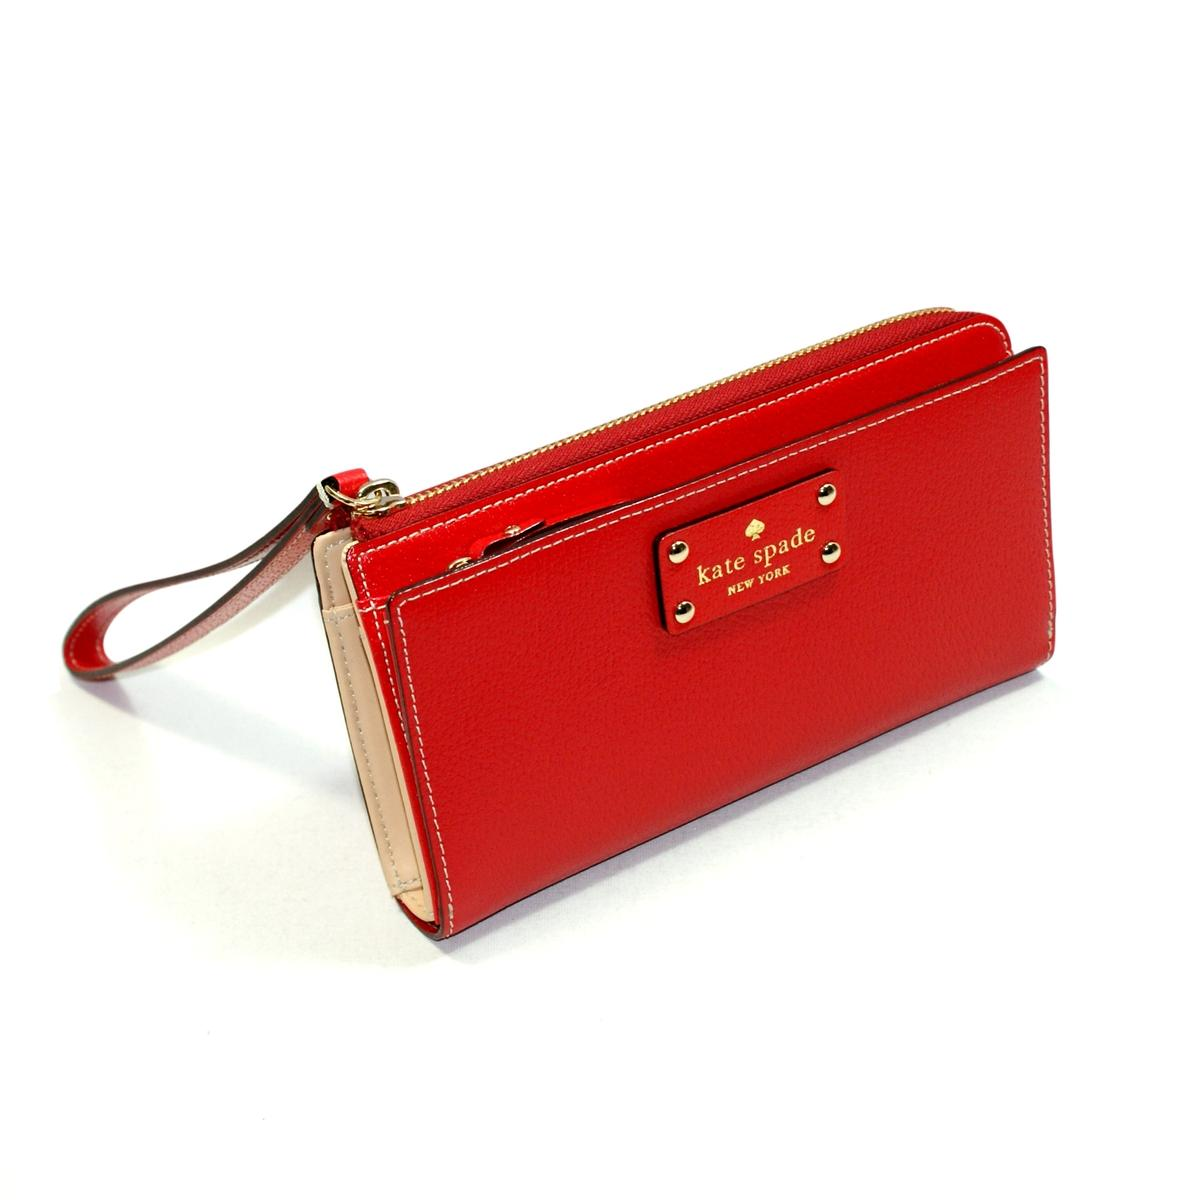 Kate Spade Layton Wellesley Leather Large Wristlet Pillbox Red Wlru1779 Kate Spade Wlru1779